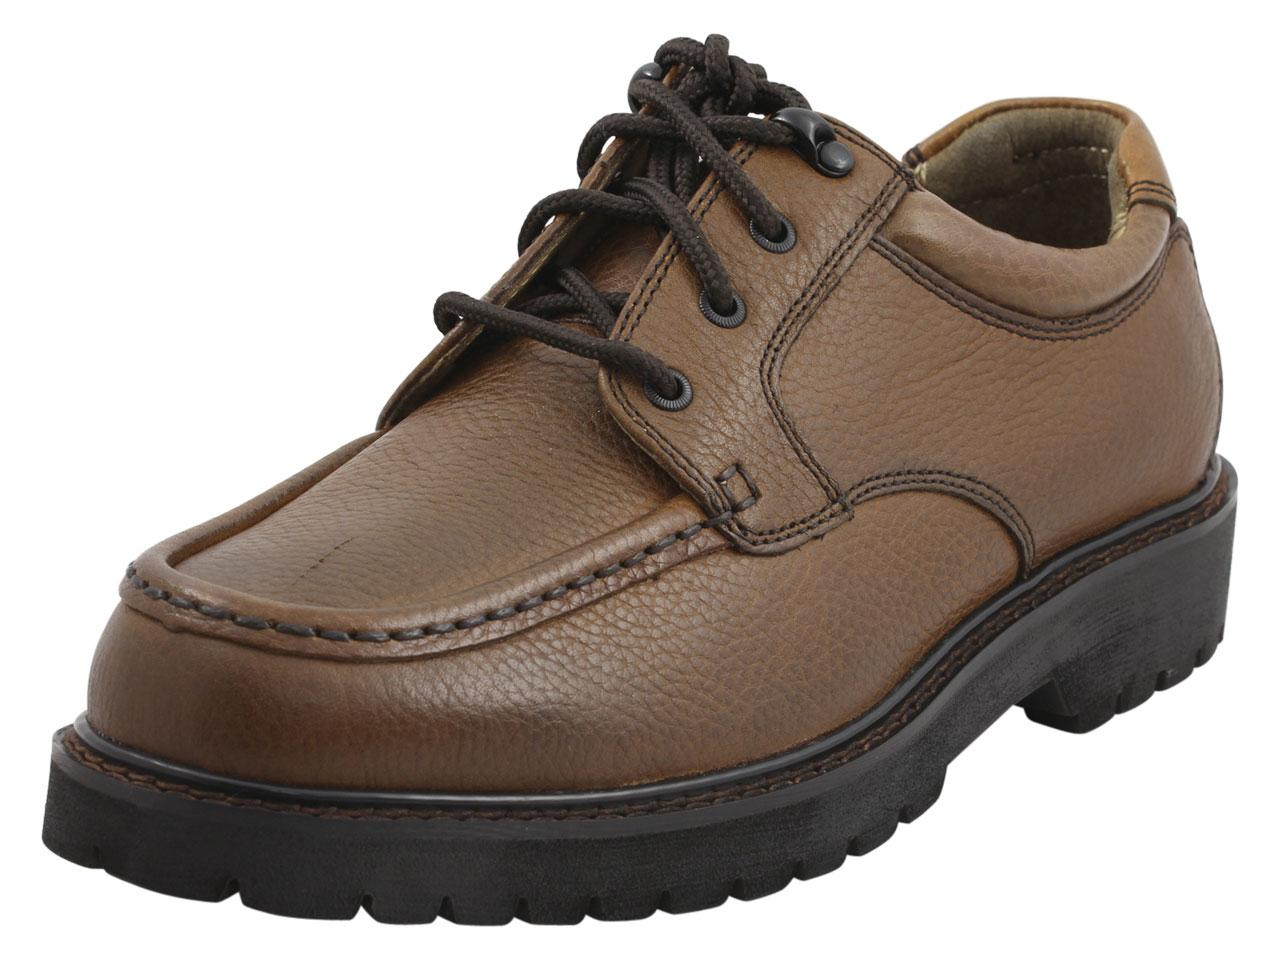 Image of Dockers Men's Glacier Memory Foam Oxfords Shoes - Brown - 8 E(W) US